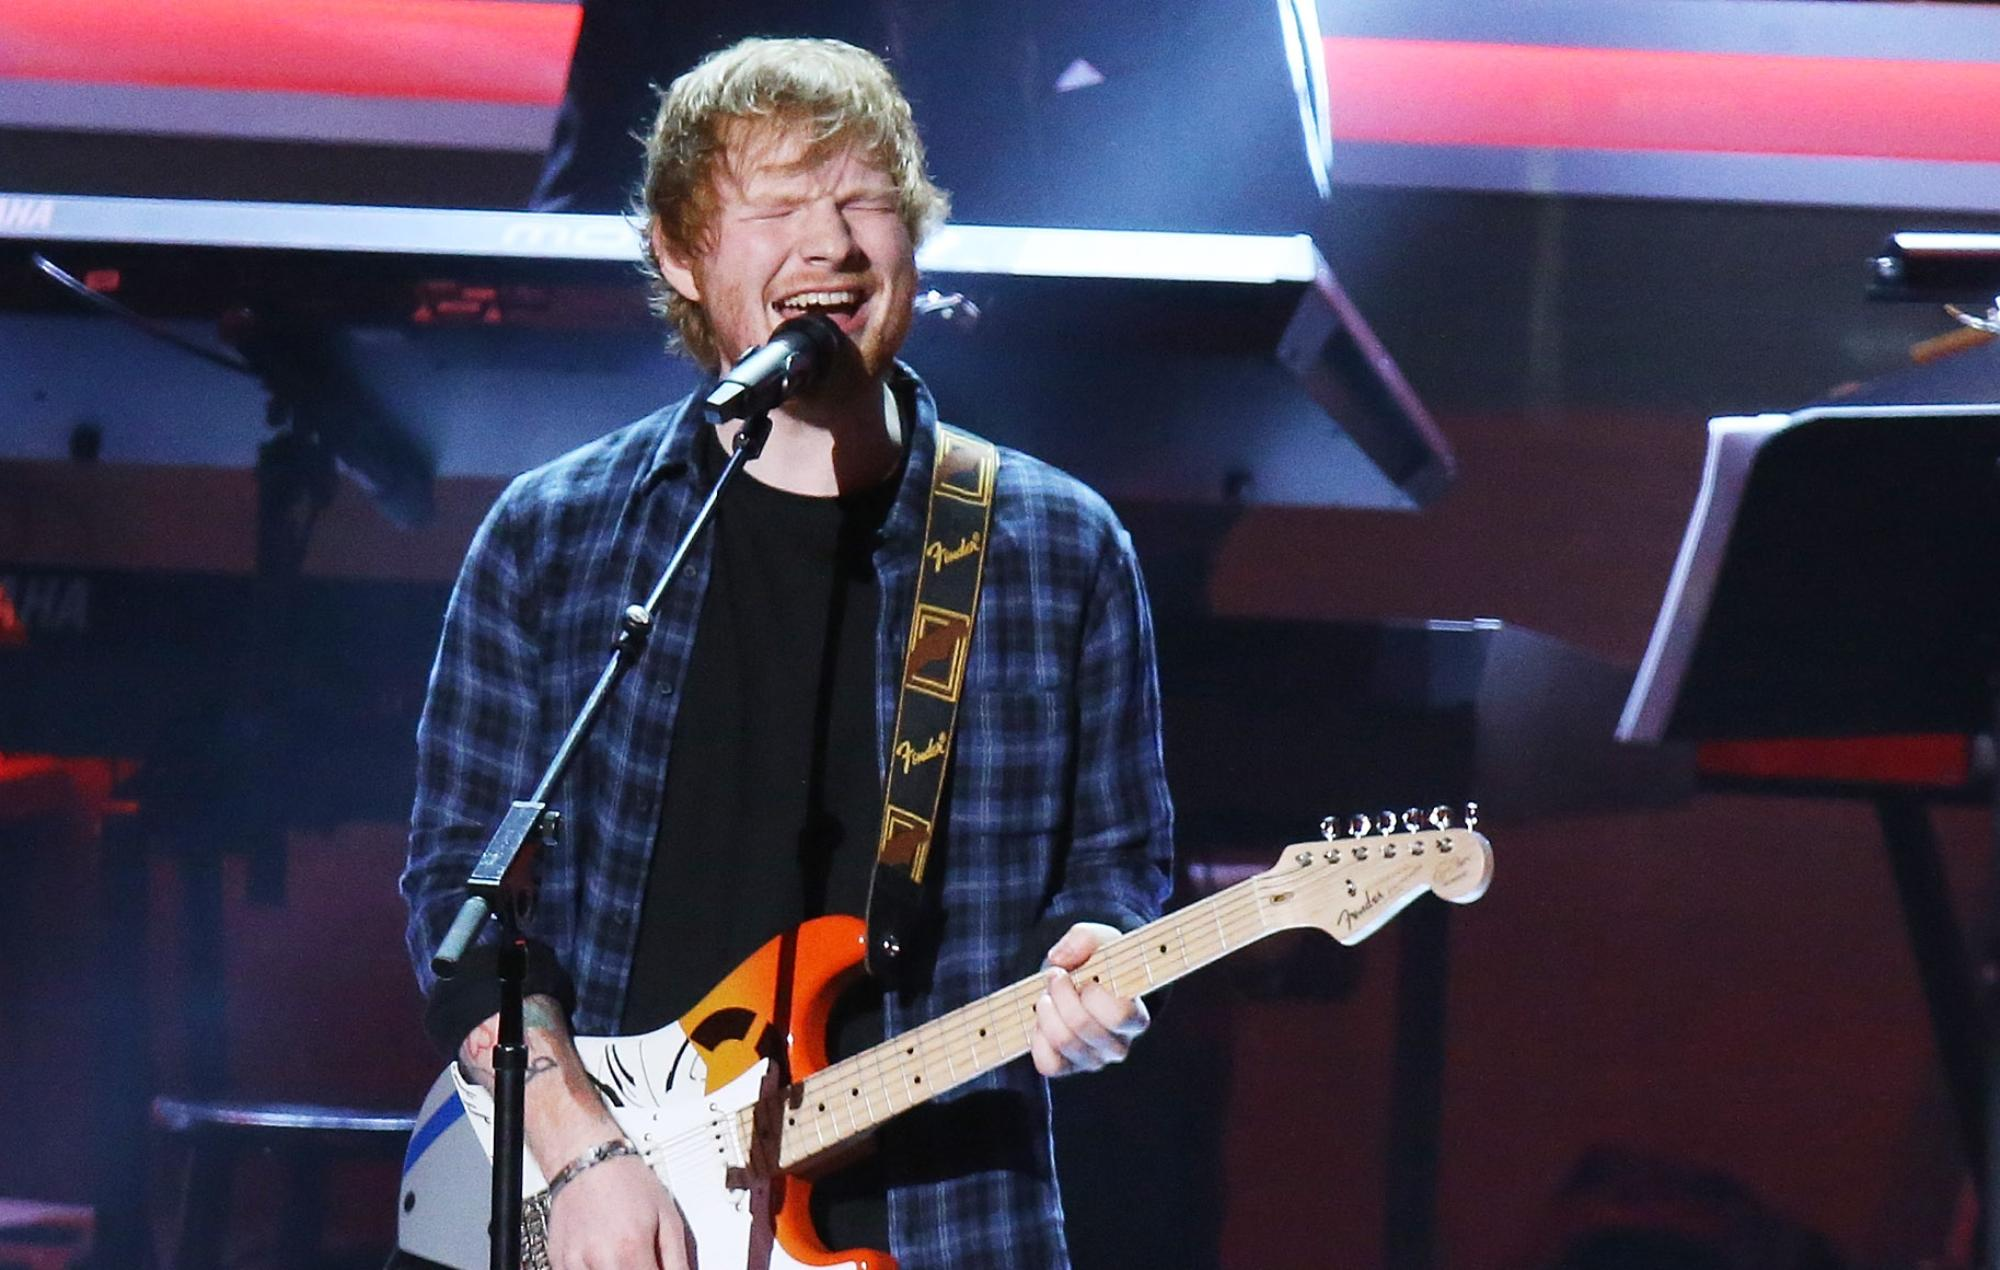 Ed Sheeran considered retirement from music following his daughter's birth